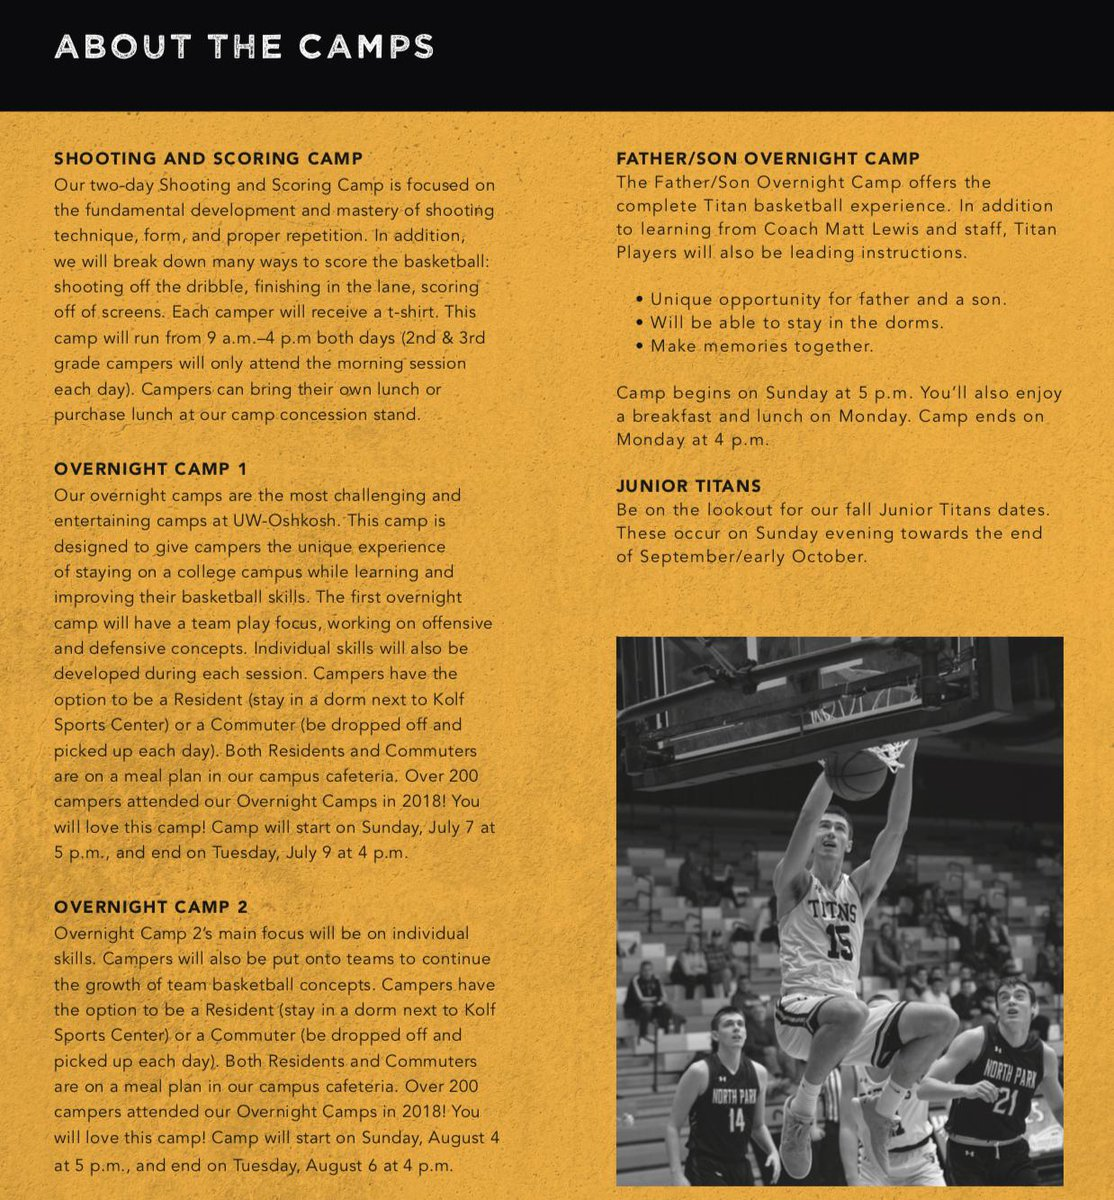 Our program can't wait for our annual Summer Basketball Camps! We are hosting two Overnight Camps, a Father-Son Overnight Camp, and a Shooting & Scoring Camp! More info can be found here: …http://mensbasketball.uwoshkoshsportscamps.com